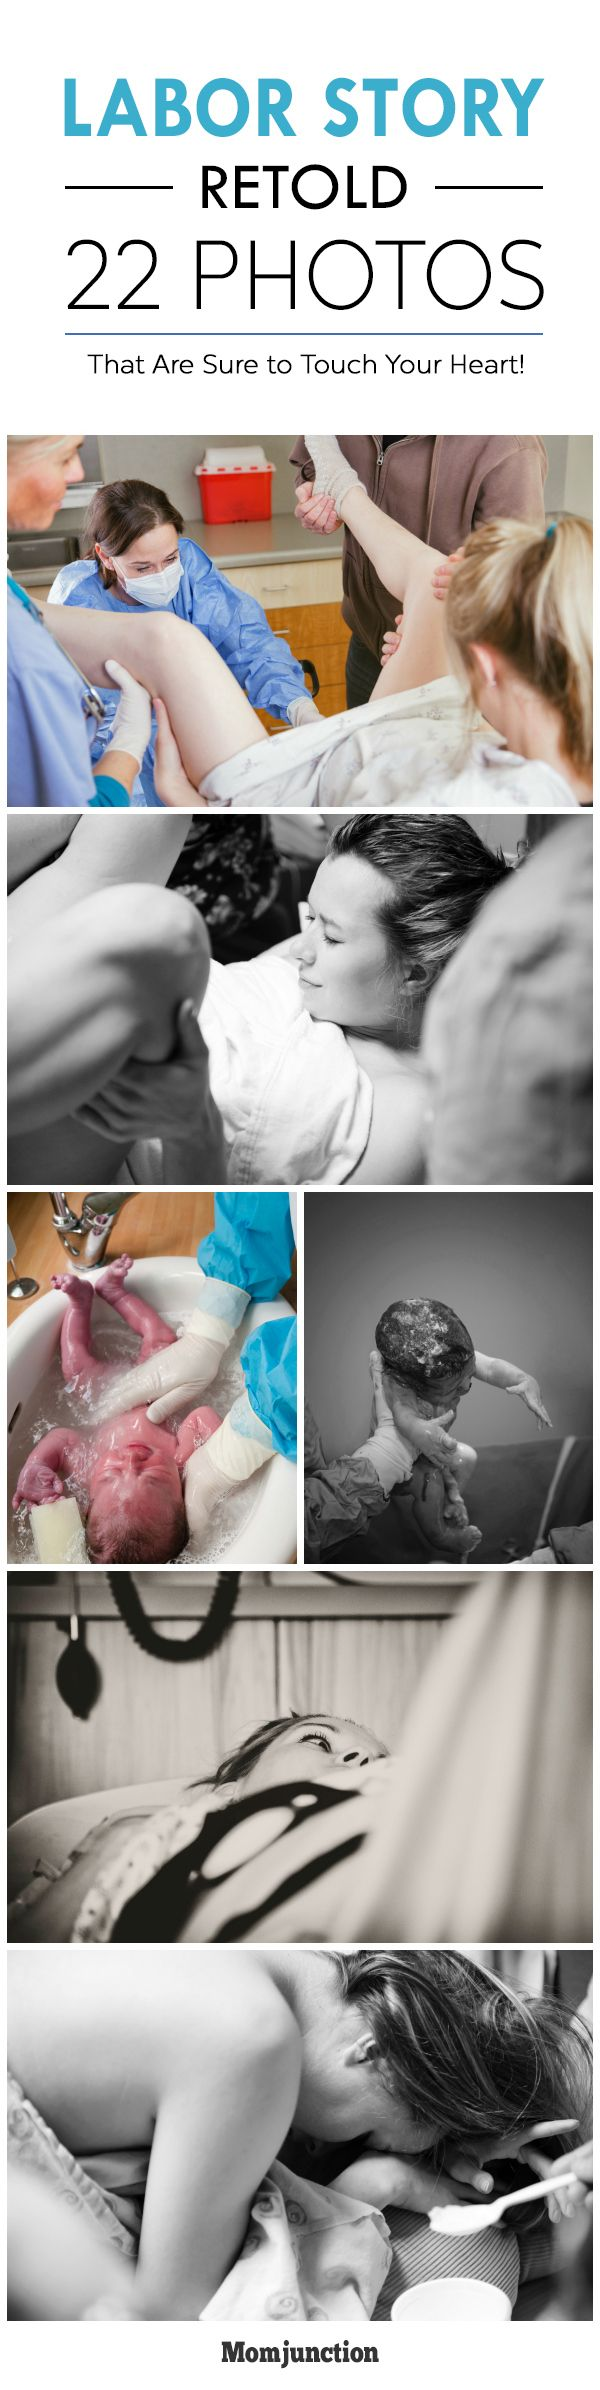 Labor Story Retold In These 22 Heart Touching Photos #Pregnancy